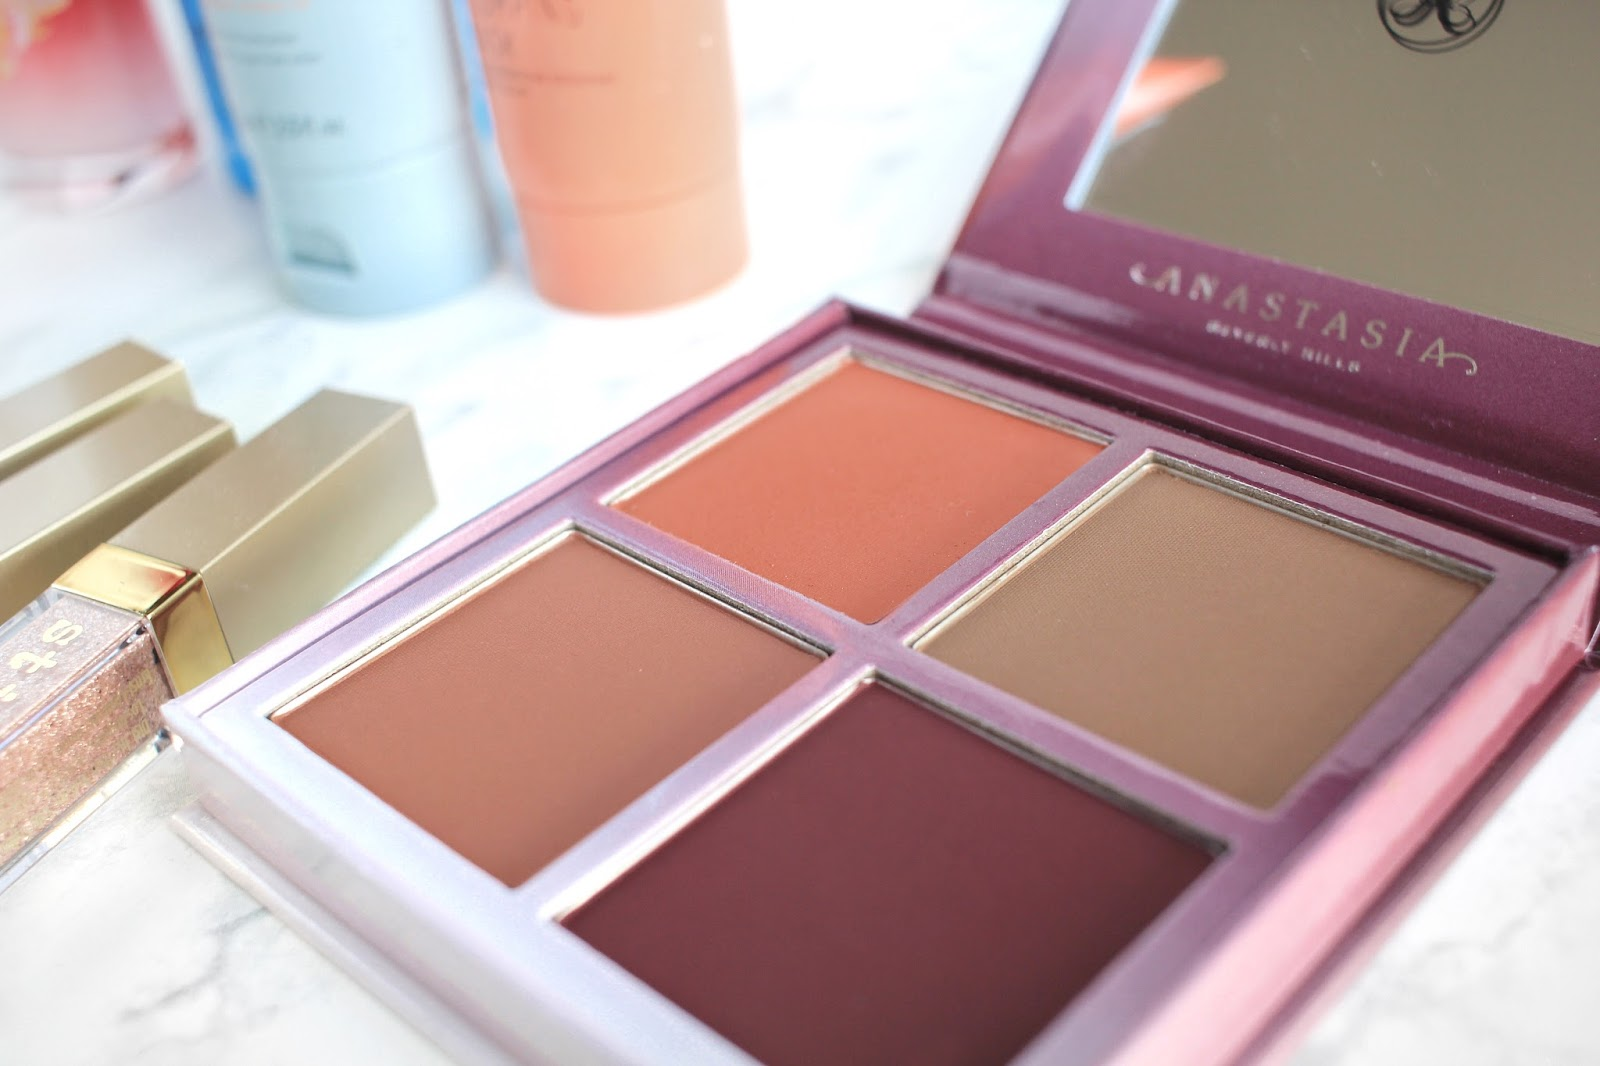 New To The Beauty Stash | A Haul ft. Stila, Nip+Fab, Shiseido, Anastasia Beverly Hills, La Roche-Posay || The Glam Surge